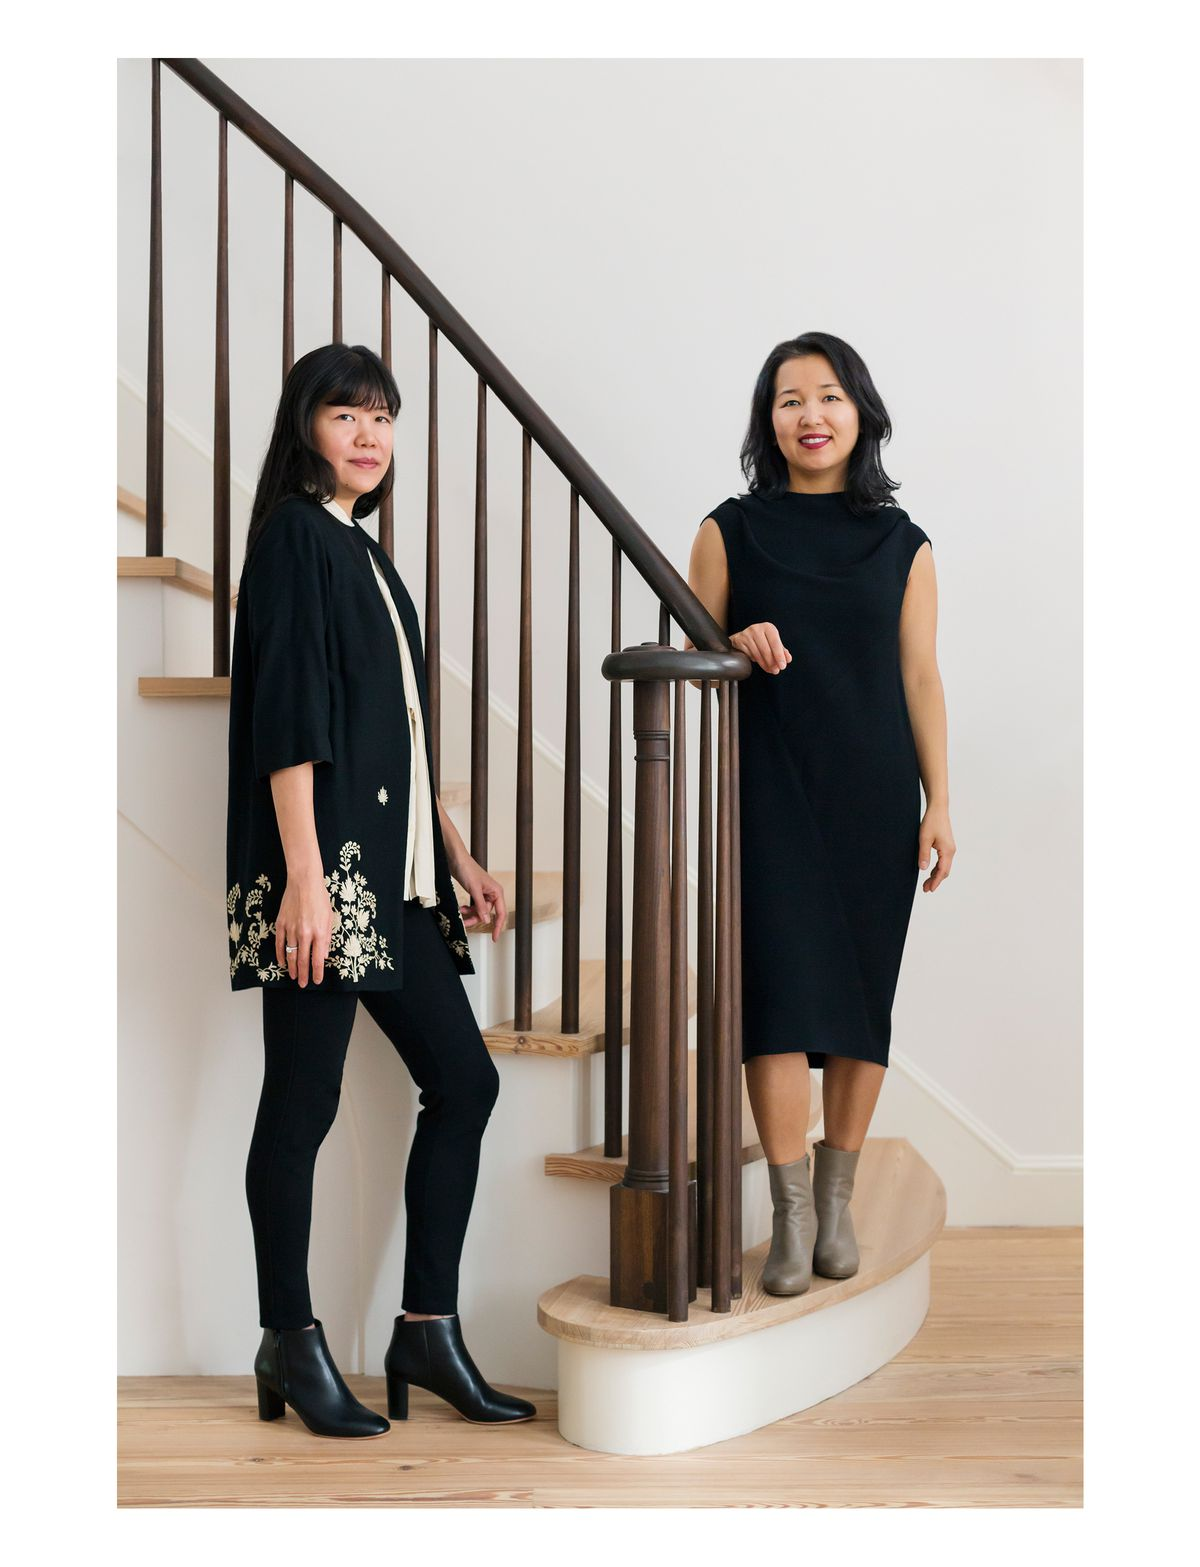 Two women, the homeowners, stand in front of a staircase with a black bannister and wooden stairs. Both women are dressed in black and are looking at the camera.